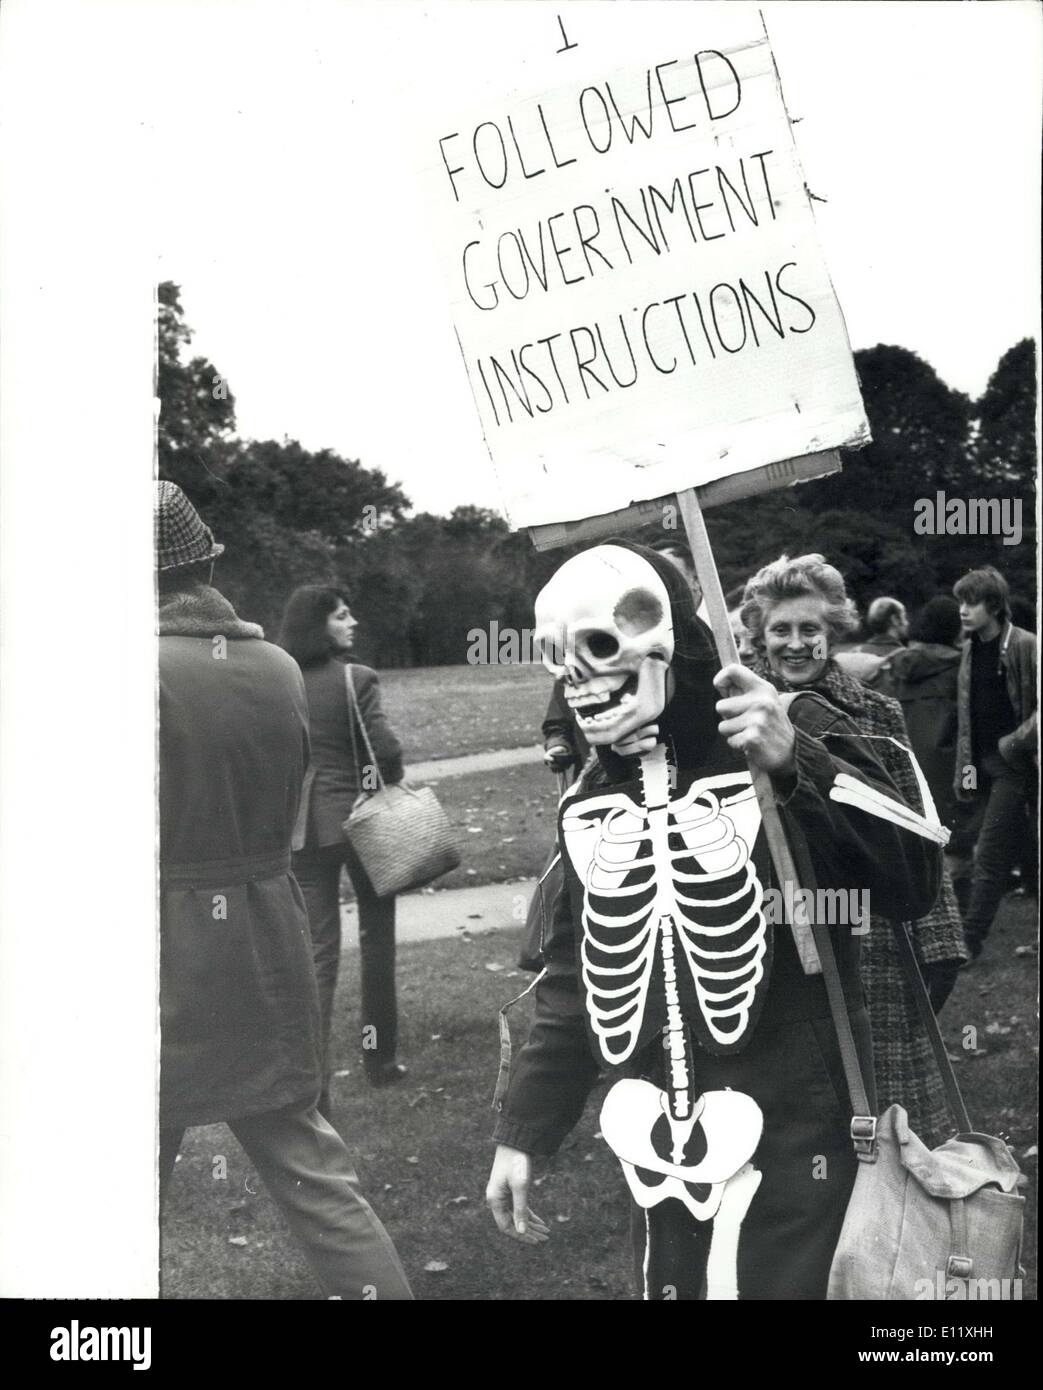 Oct. 27, 1980 - 50,000 Demonstrators March Through London The largest demonstration against nuclear weapons sinceStock Photo